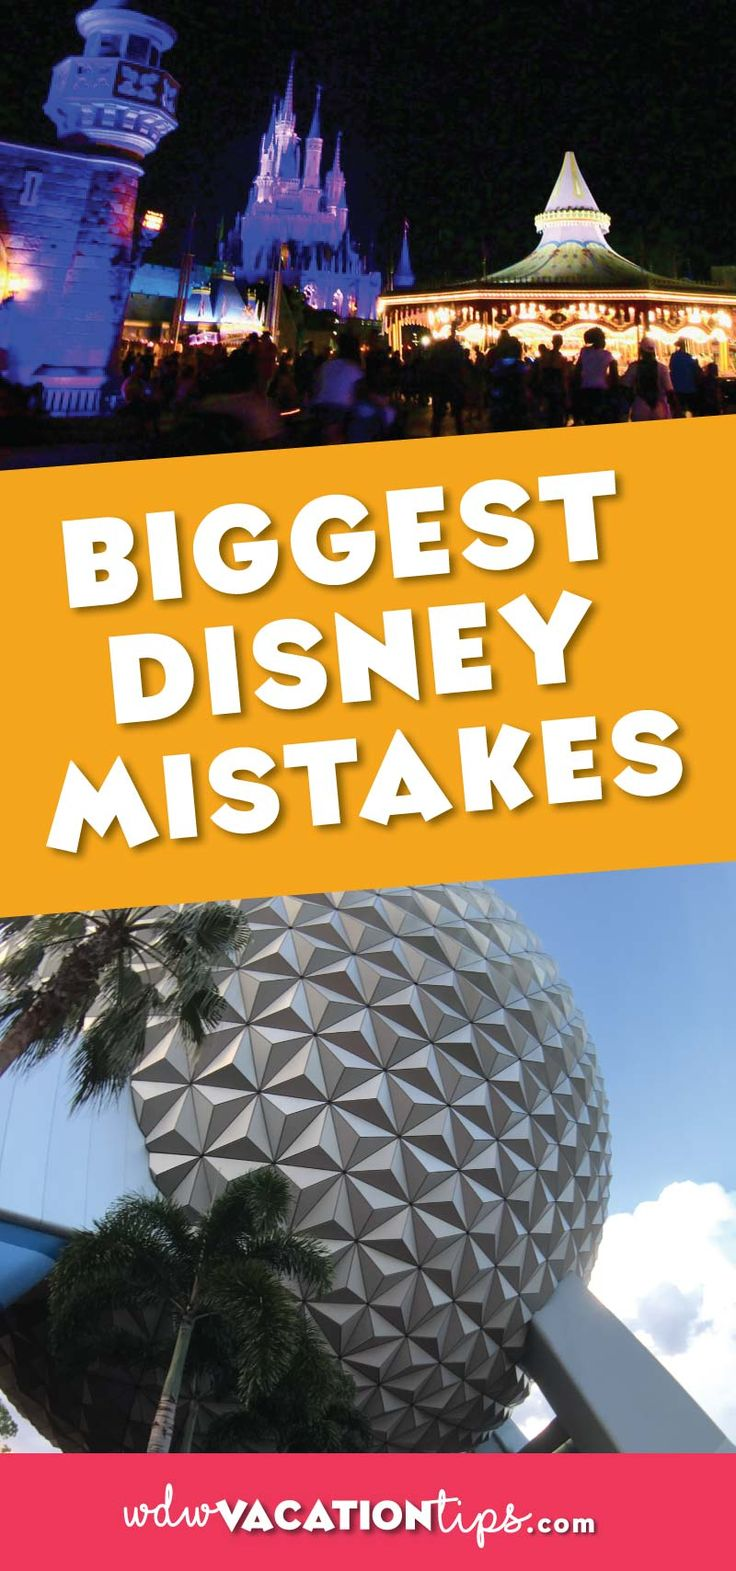 WOW great list of items of mistakes to avoid making at Disney World. Don't make these Disney vacation mistakes.